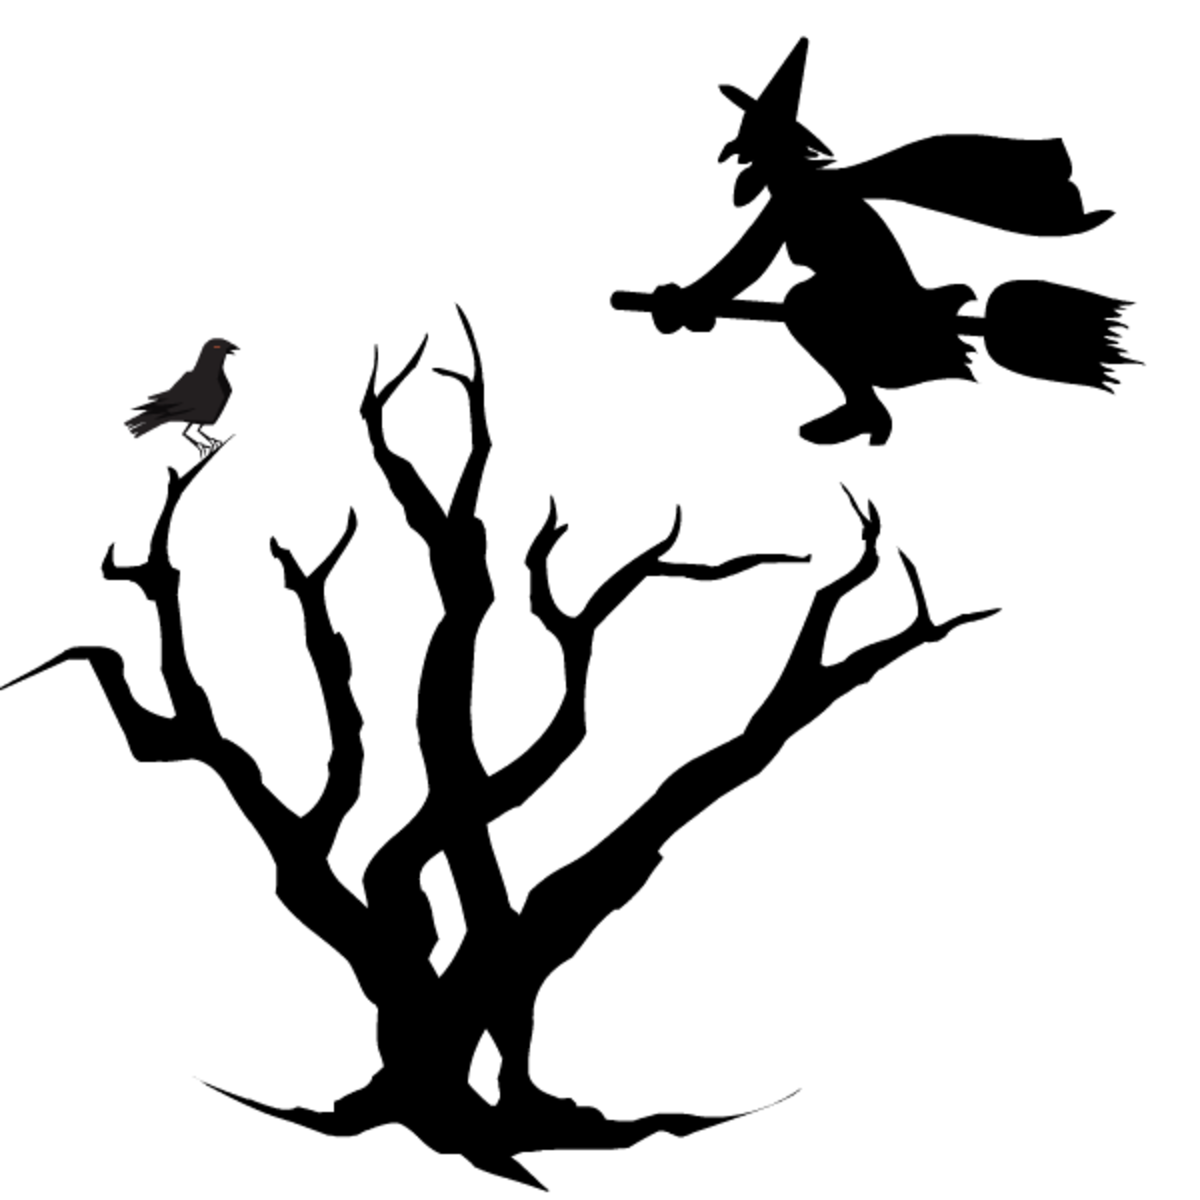 Please scroll down to see all the black and white Halloween clip art